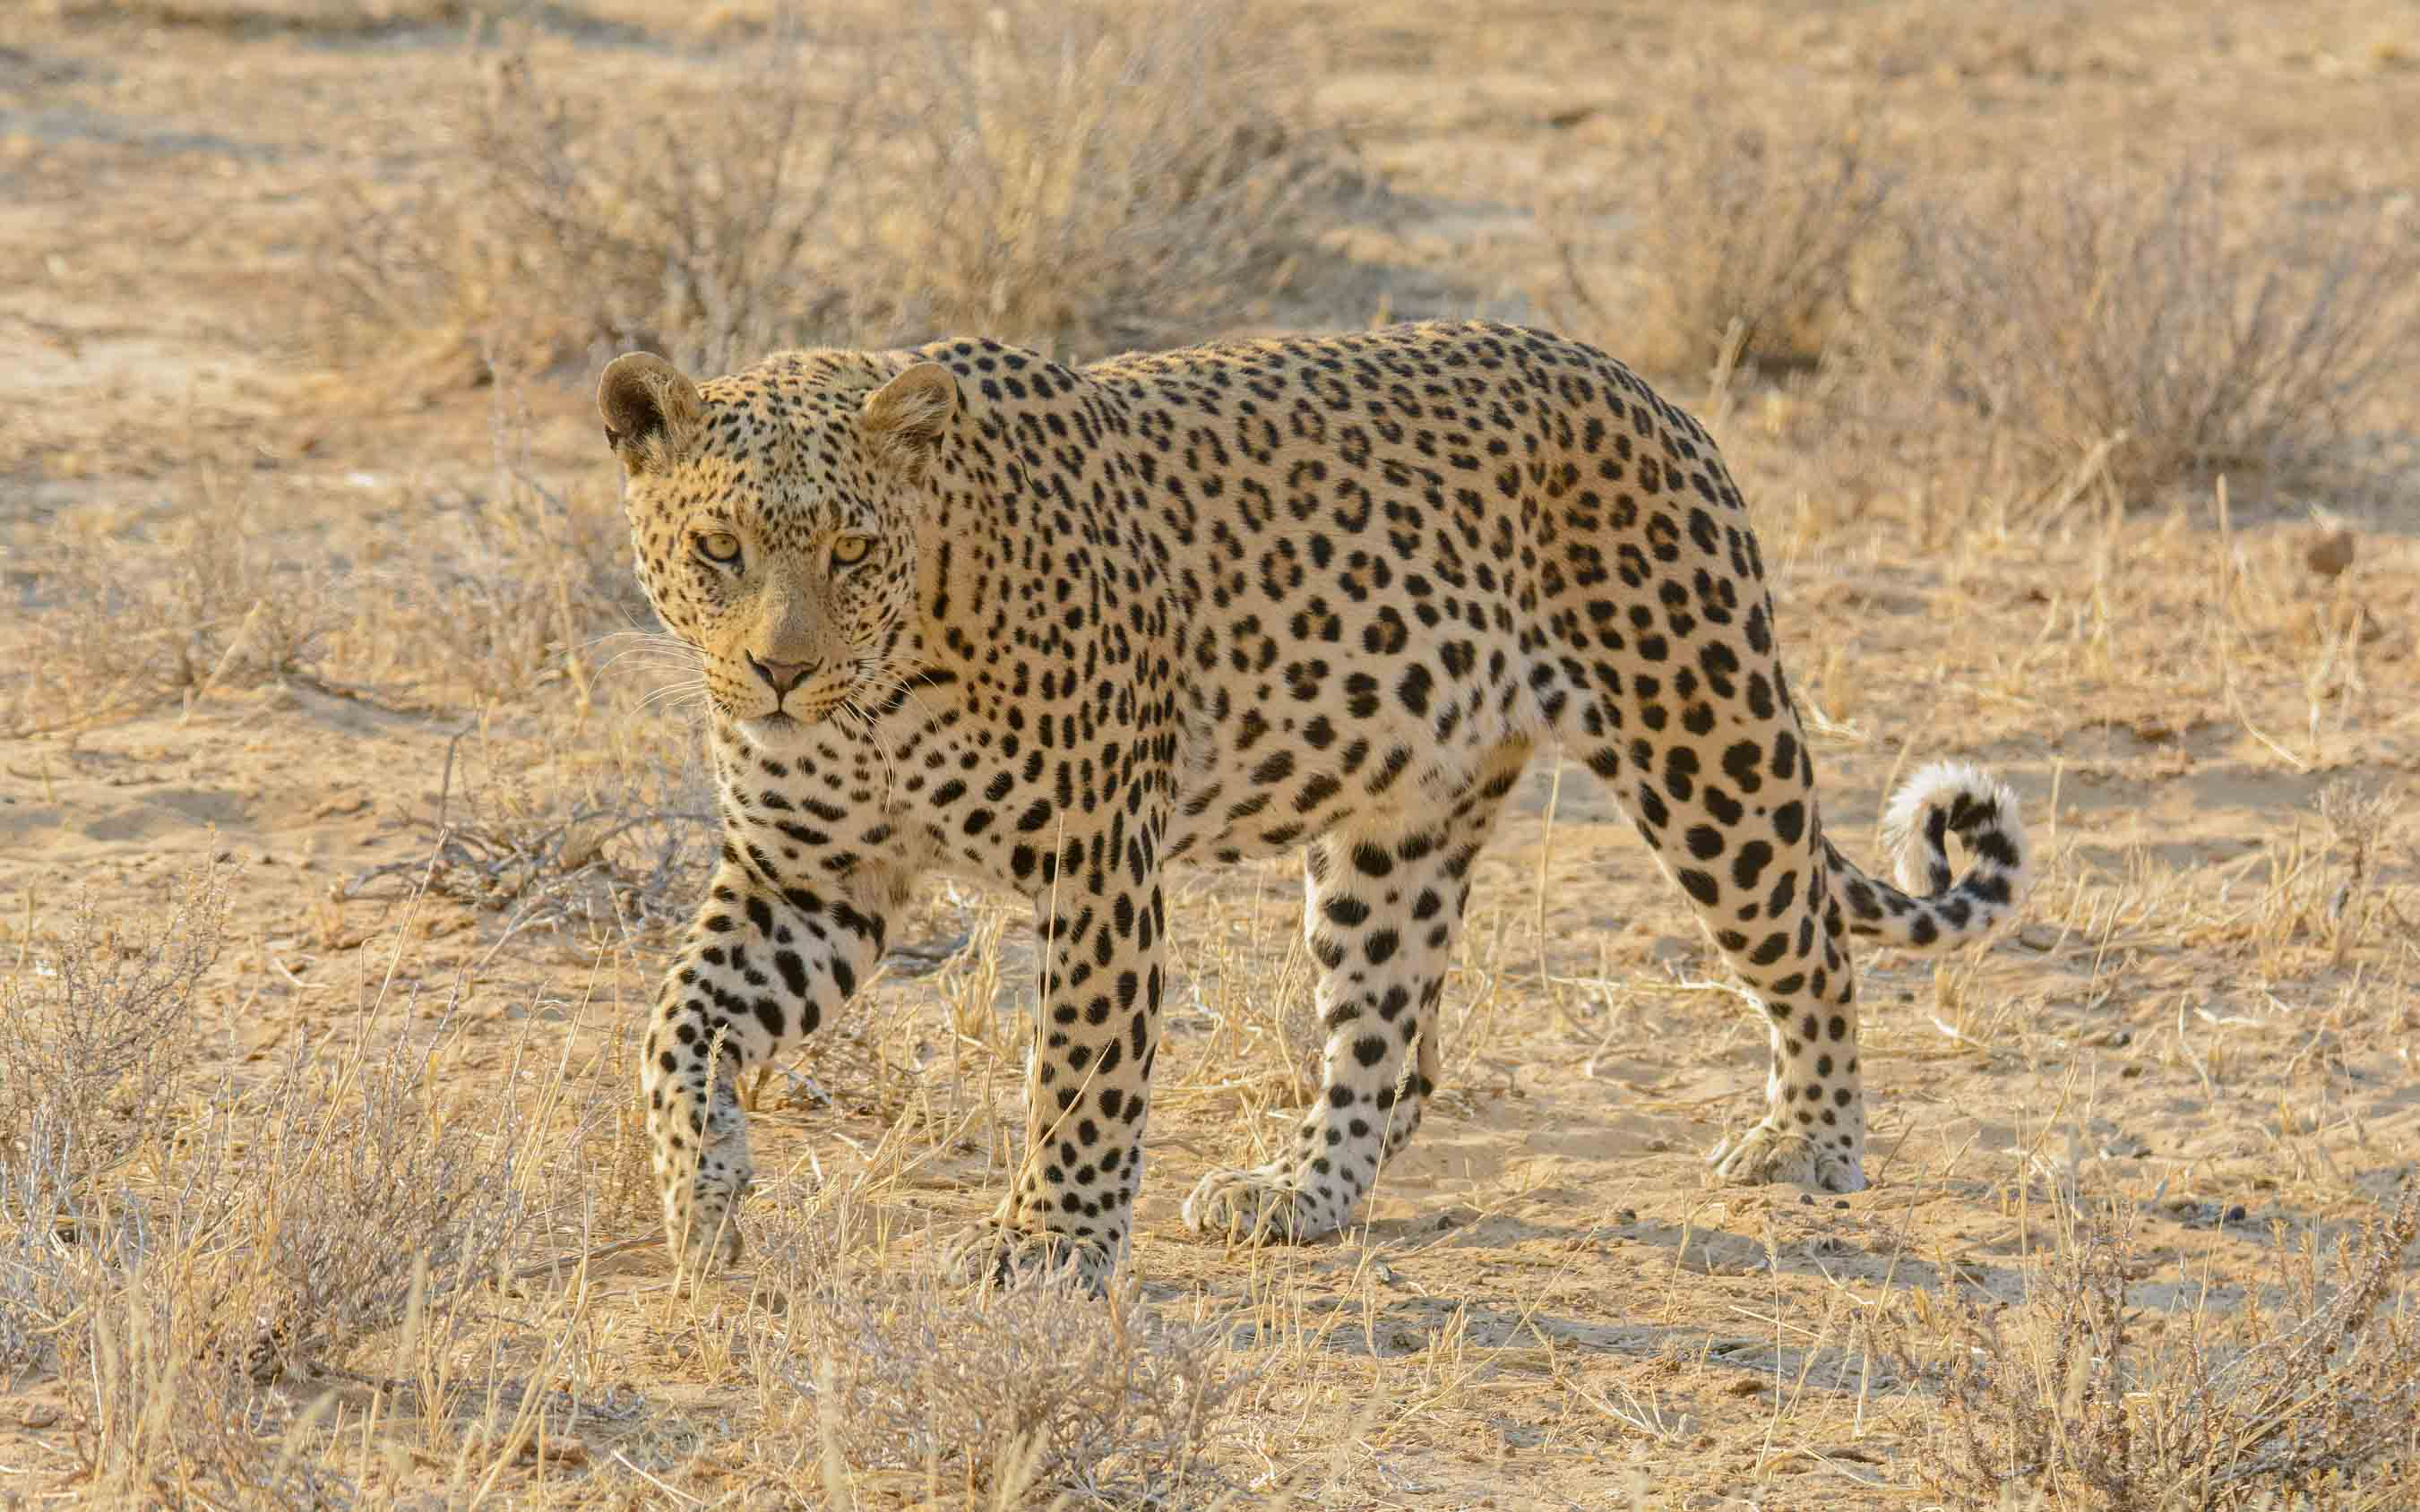 Mammal and Birding Tour South Africa: The Kalahari April 2020